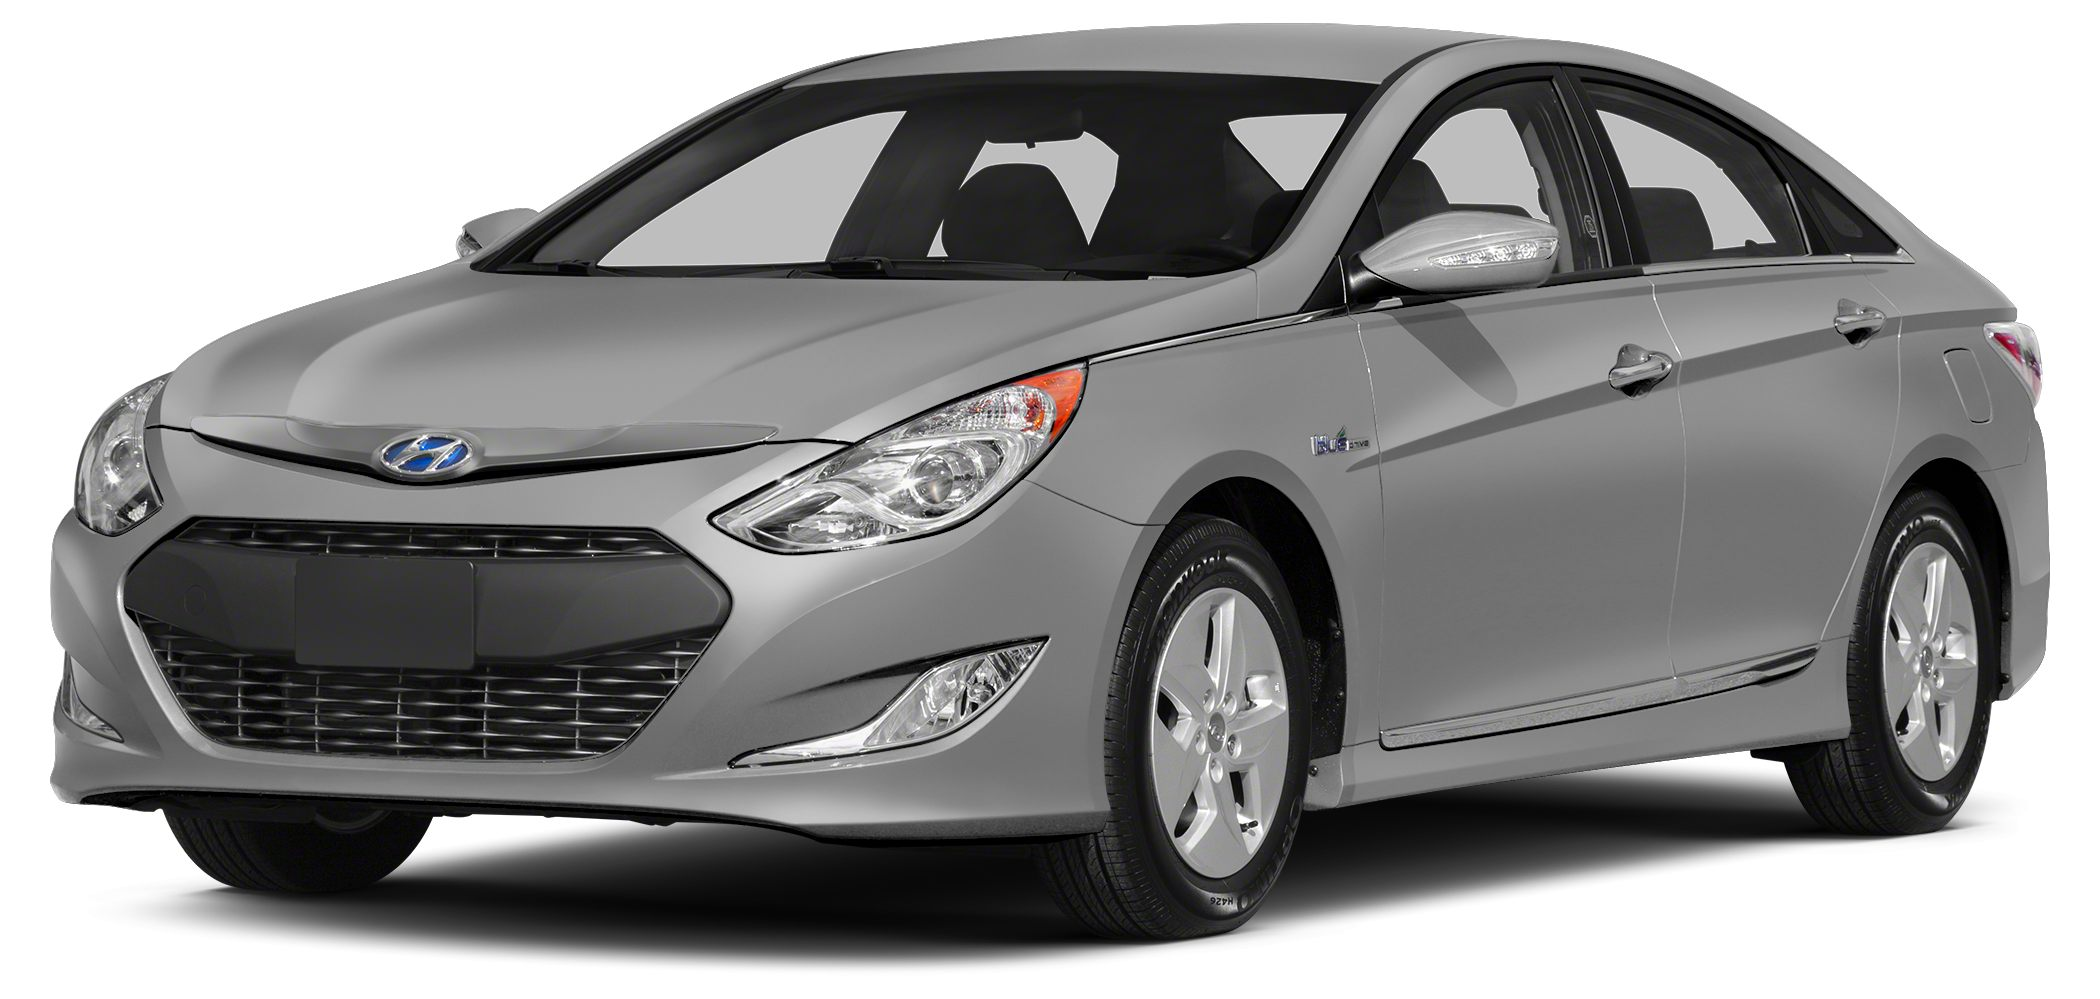 2015 Hyundai Sonata Hybrid Limited Must finance with HMFC to collect all and full discounts Price